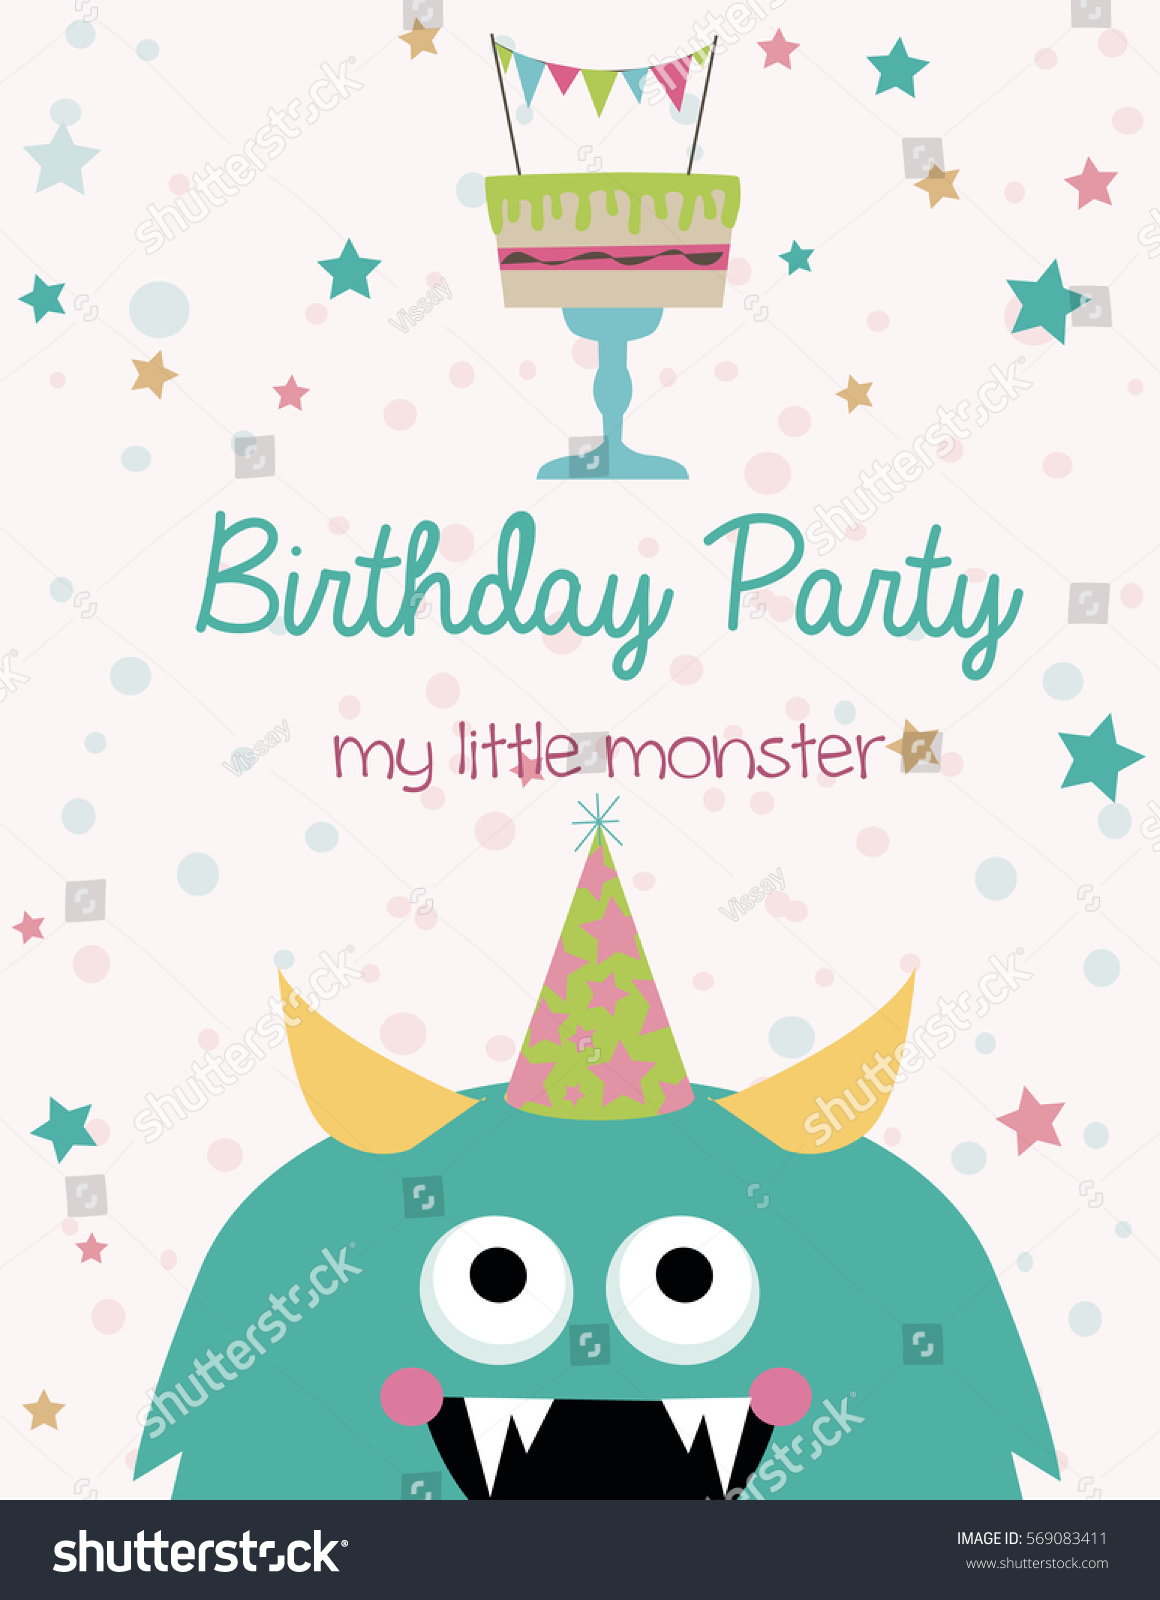 Funny birthday greeting invitation card monster stock vector funny birthday greeting or invitation card for monster party vector illustration kristyandbryce Images